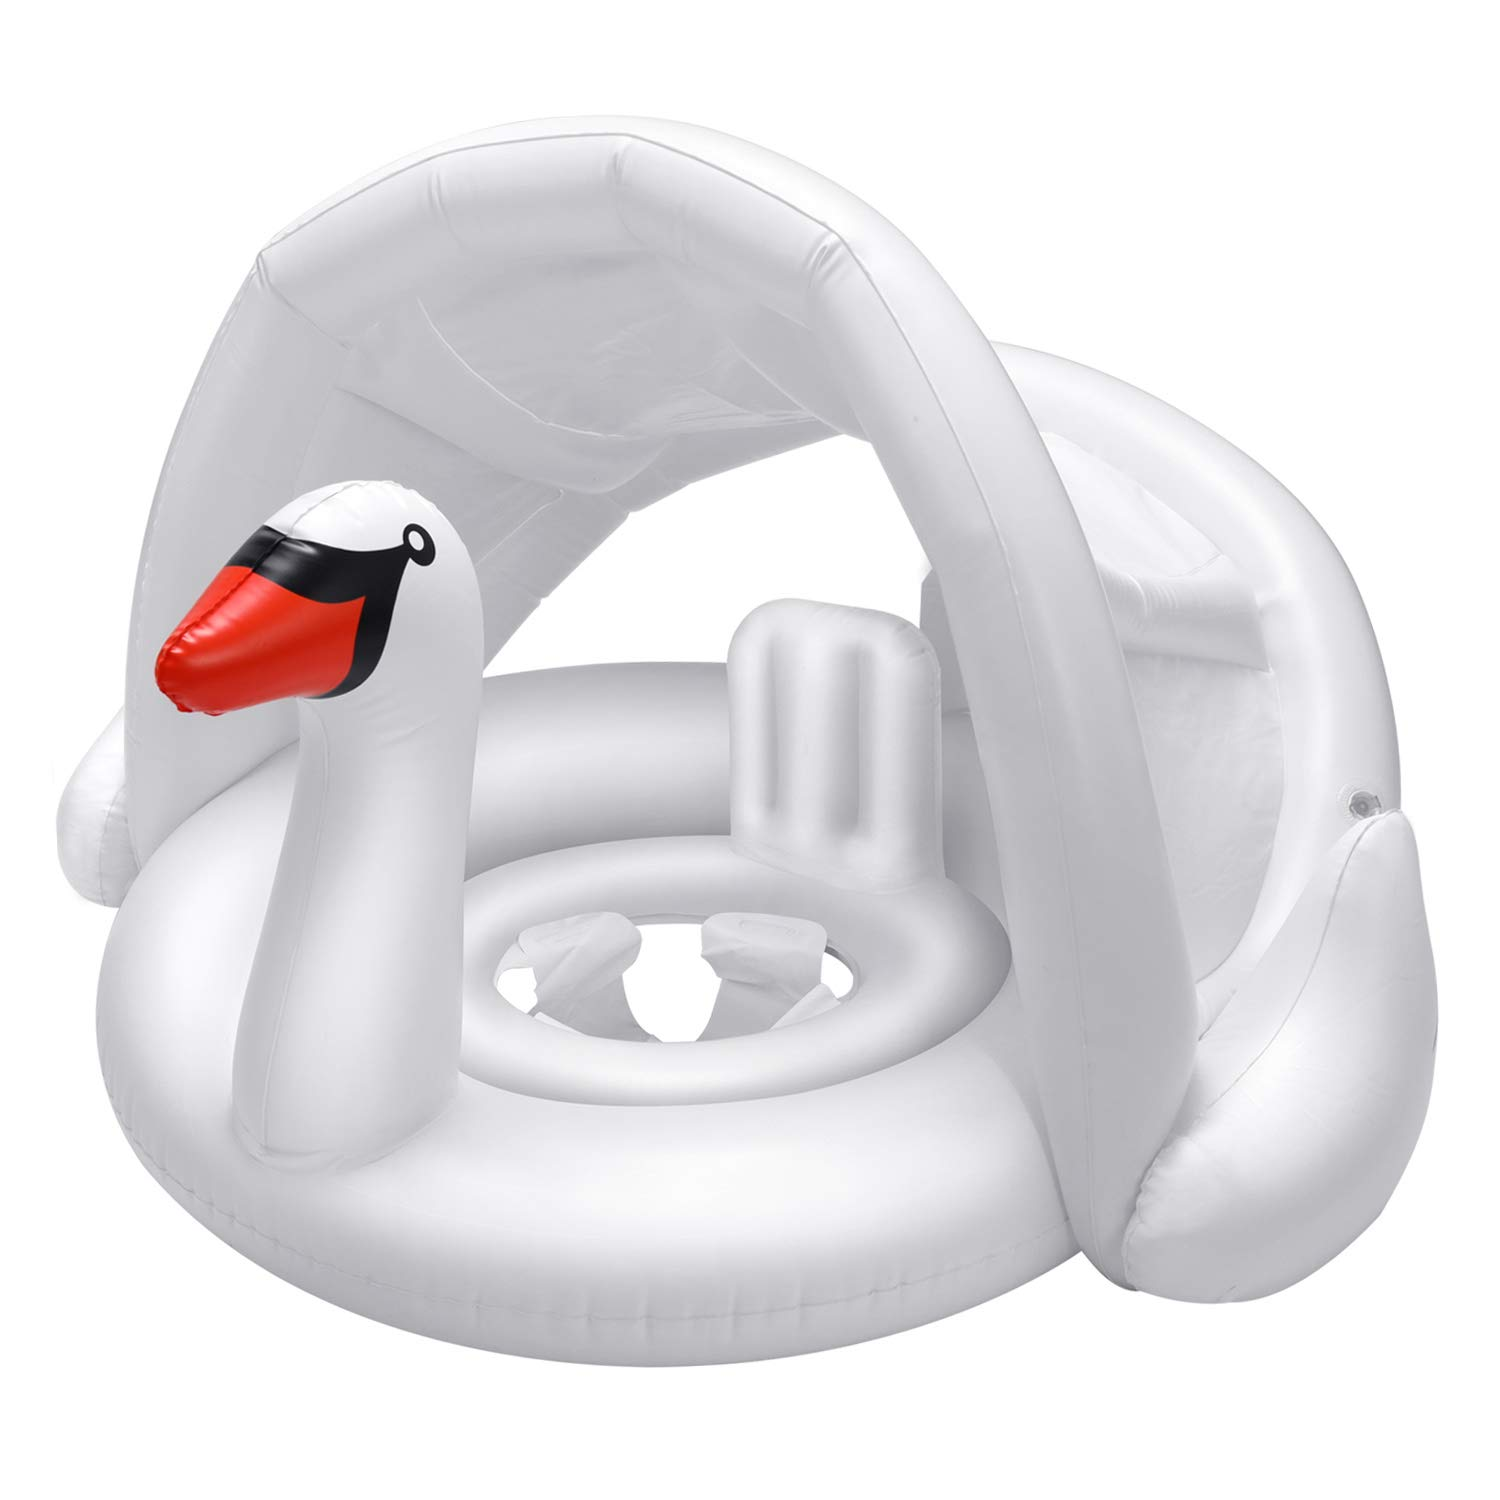 iefoah Baby Pool Float with Canopy Swan Inflatable Floatie with Sunshade Swan Swimming Ring for Infant Boys Girls Toddlers White